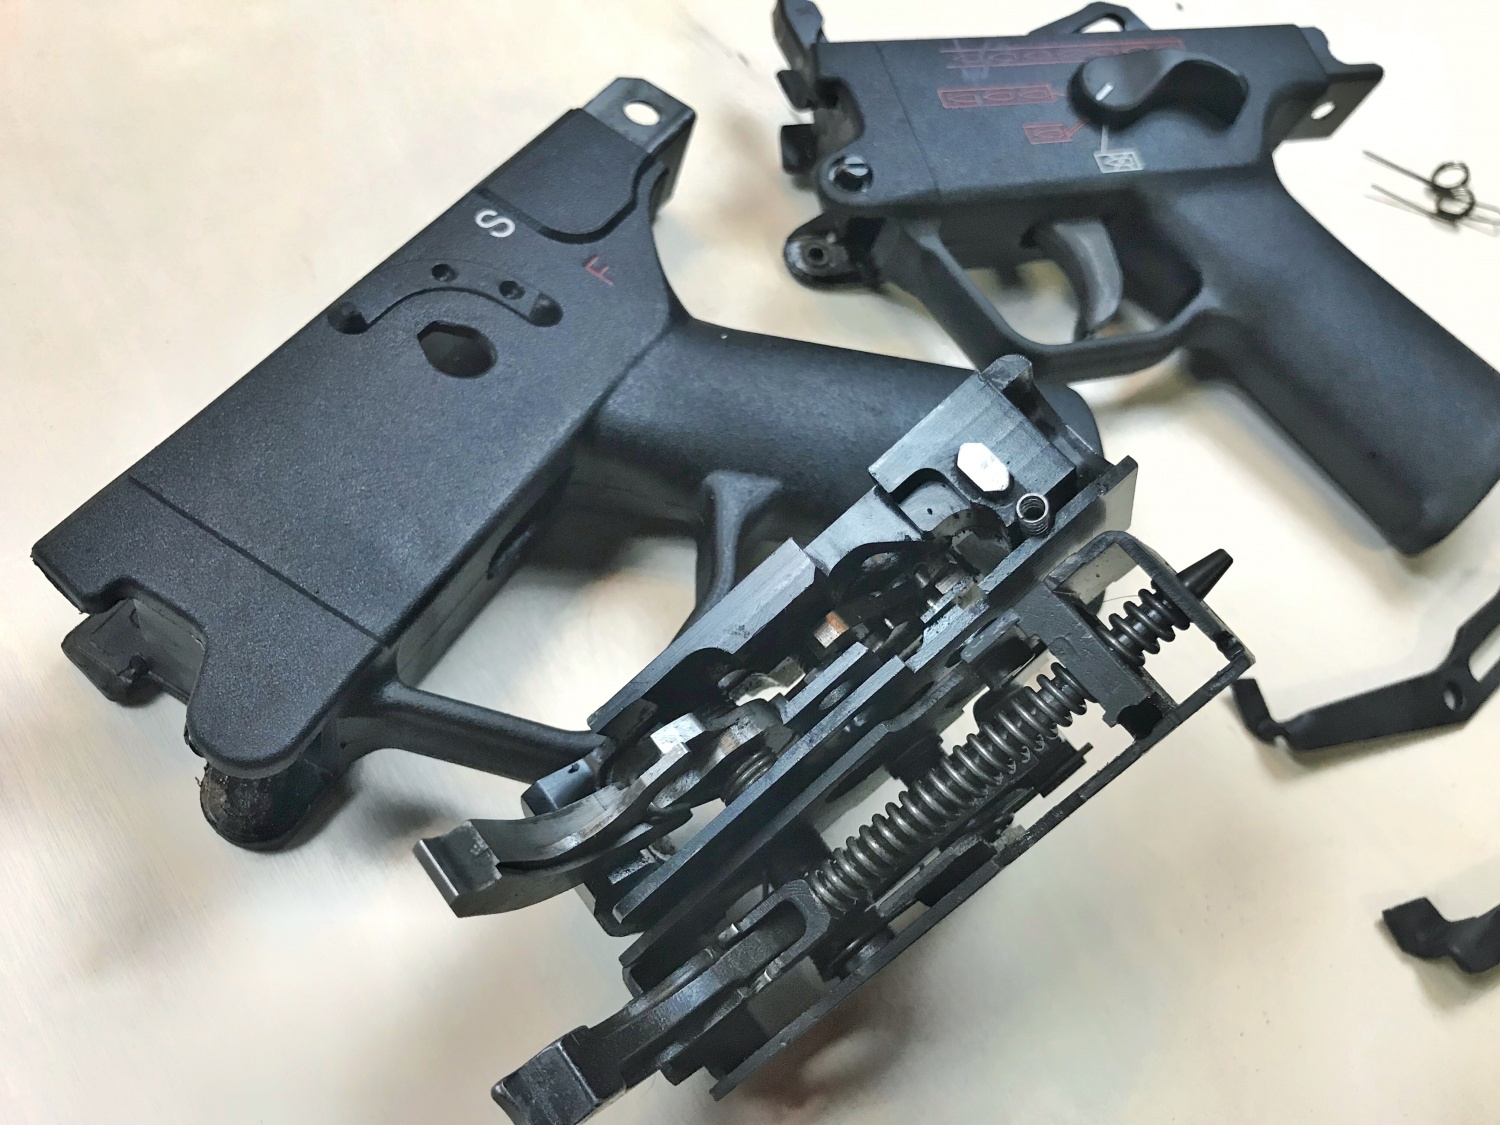 TFB REVIEW: Franklin Armory BFSIII Binary Trigger For H&K